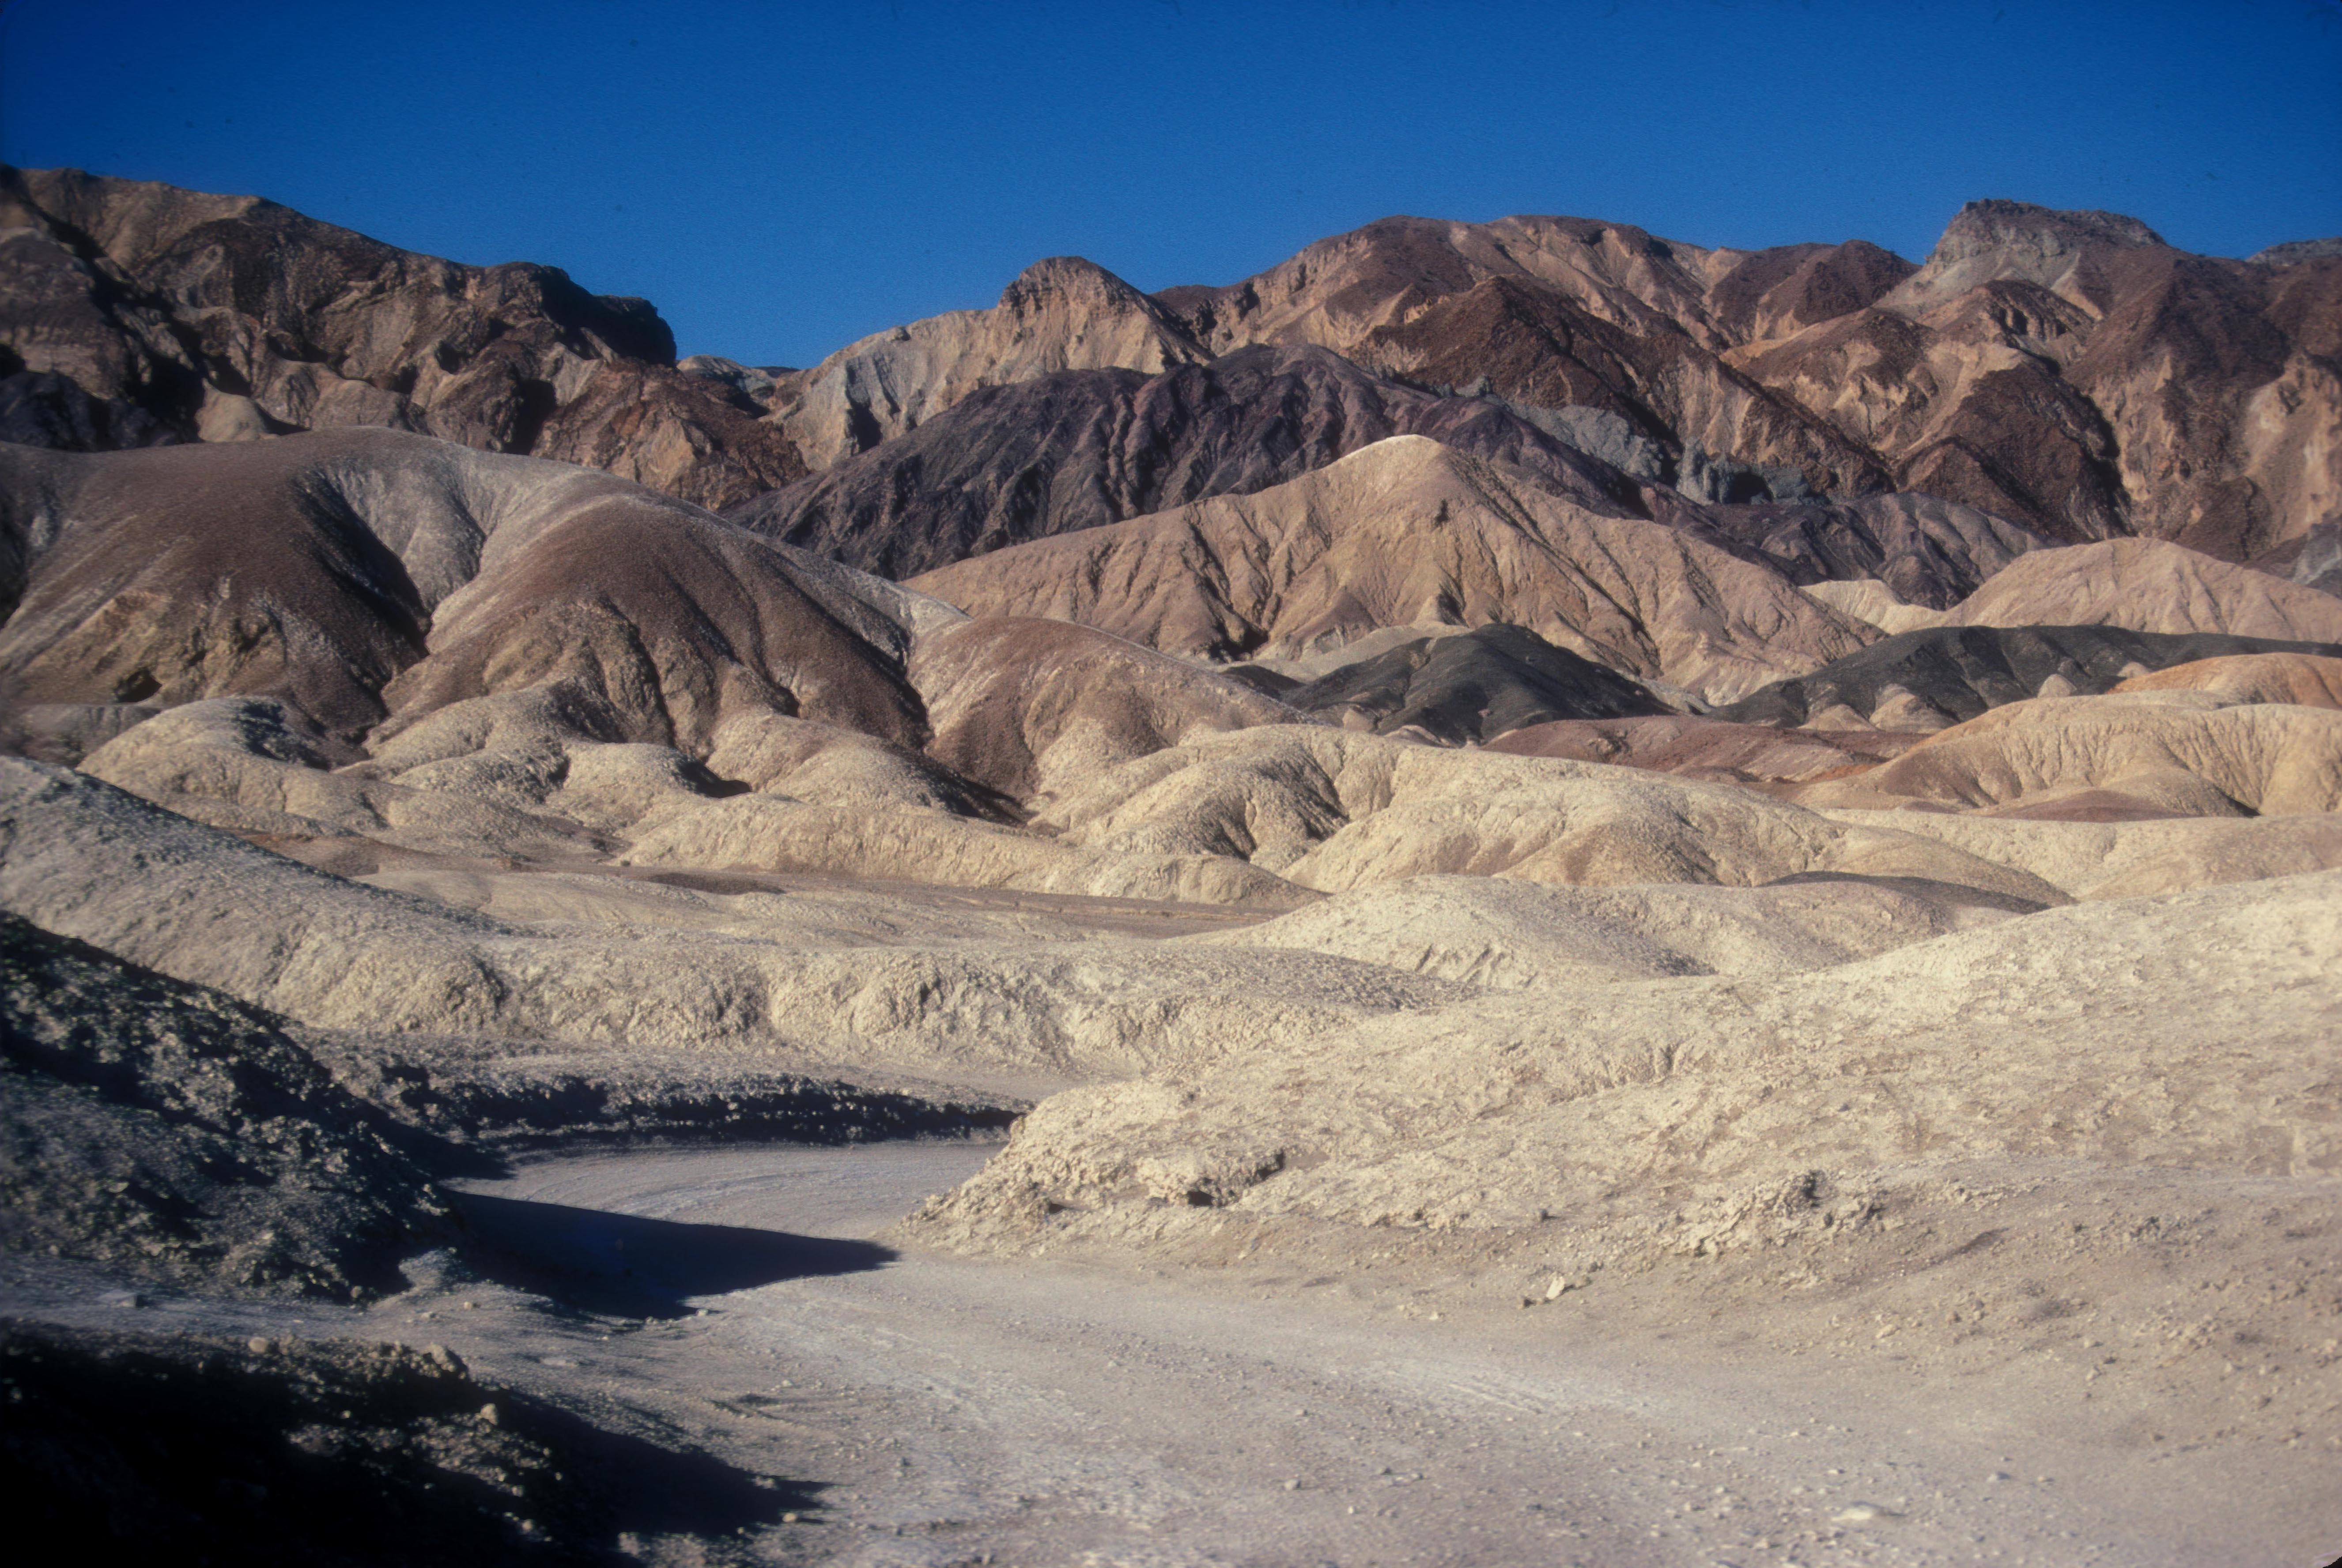 Source: http://commons.wikimedia.org/wiki/File:TWENTY_MULE_TEAM_CANYON_ROAD,_DEATH_VALLEY,_CA.jpg